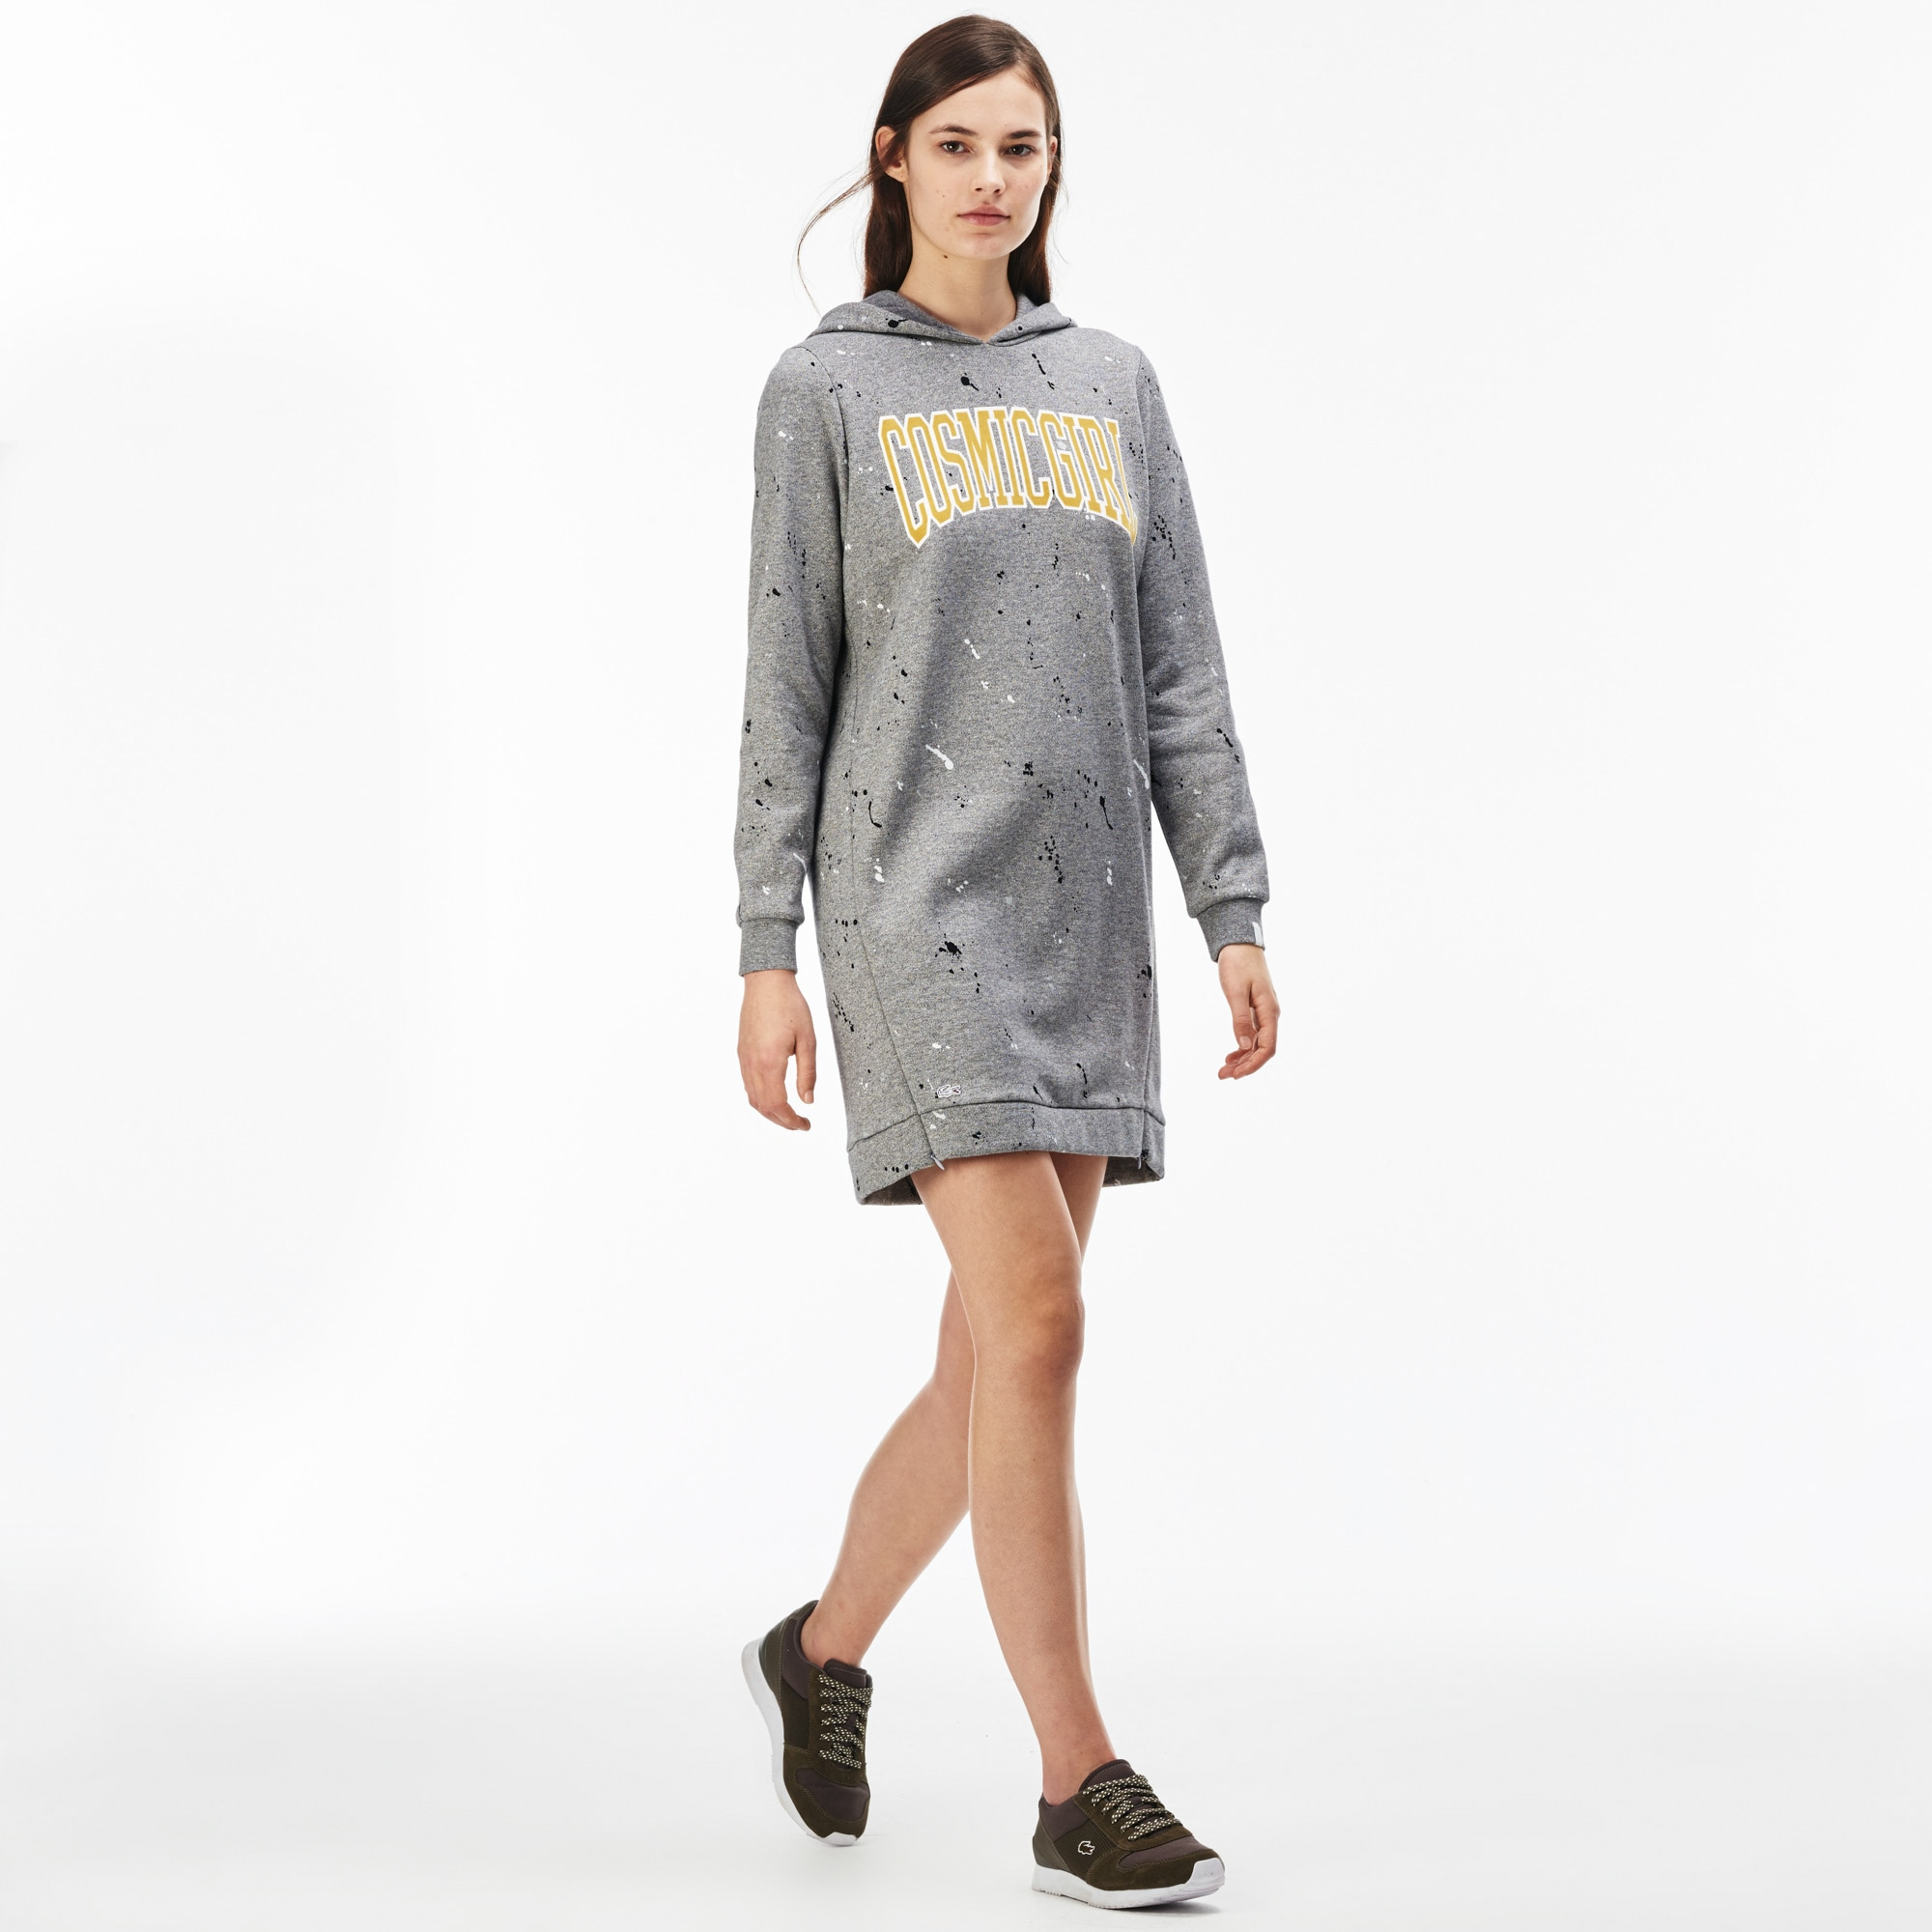 Women's  LIVE Cosmicgirl Print Fleece Sweatshirt Dress